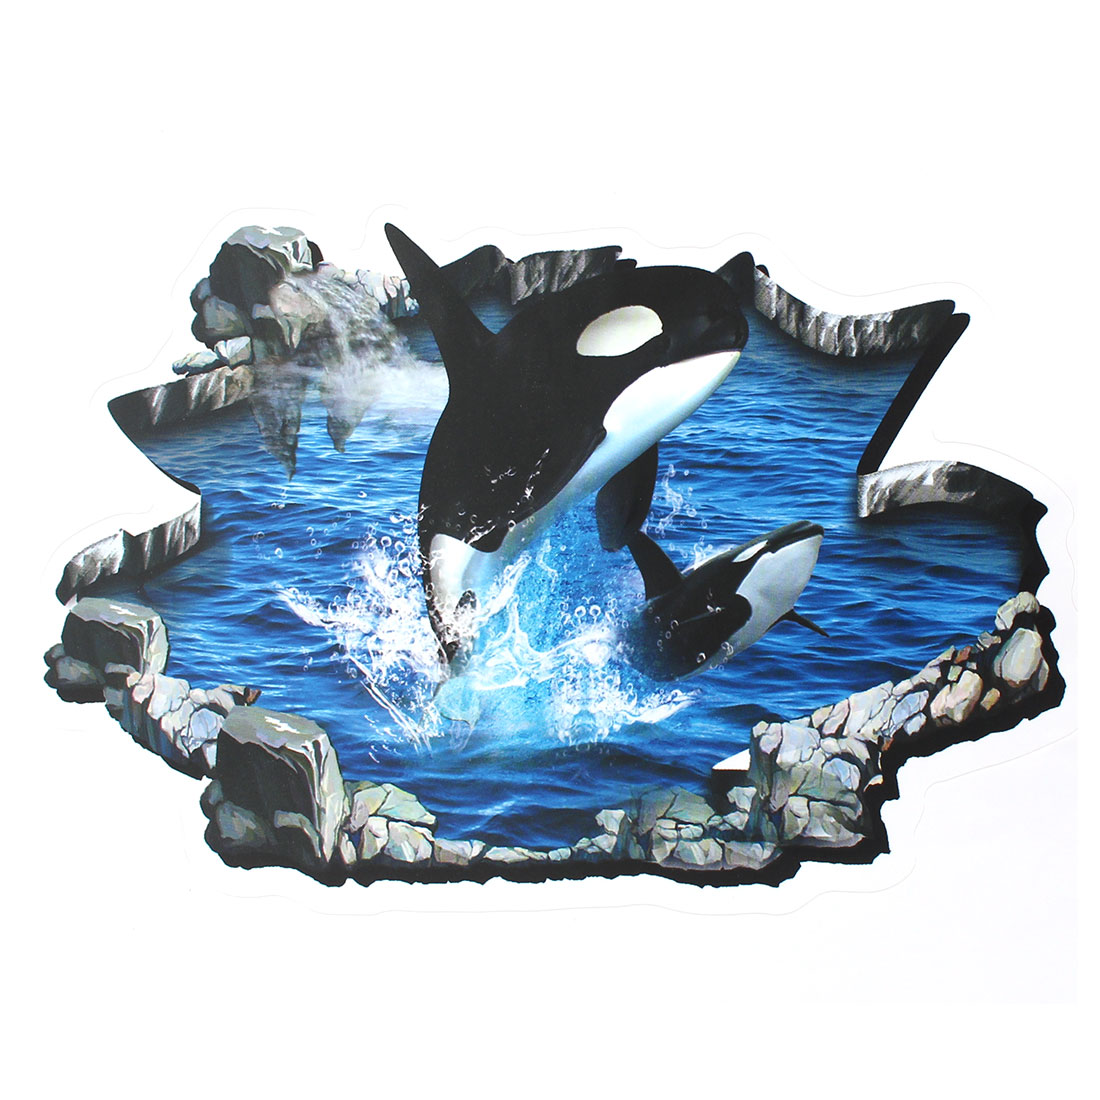 Home Living Room Wall Ceiling 3D Jumping Dolphin Pattern DIY Decorative Sticker